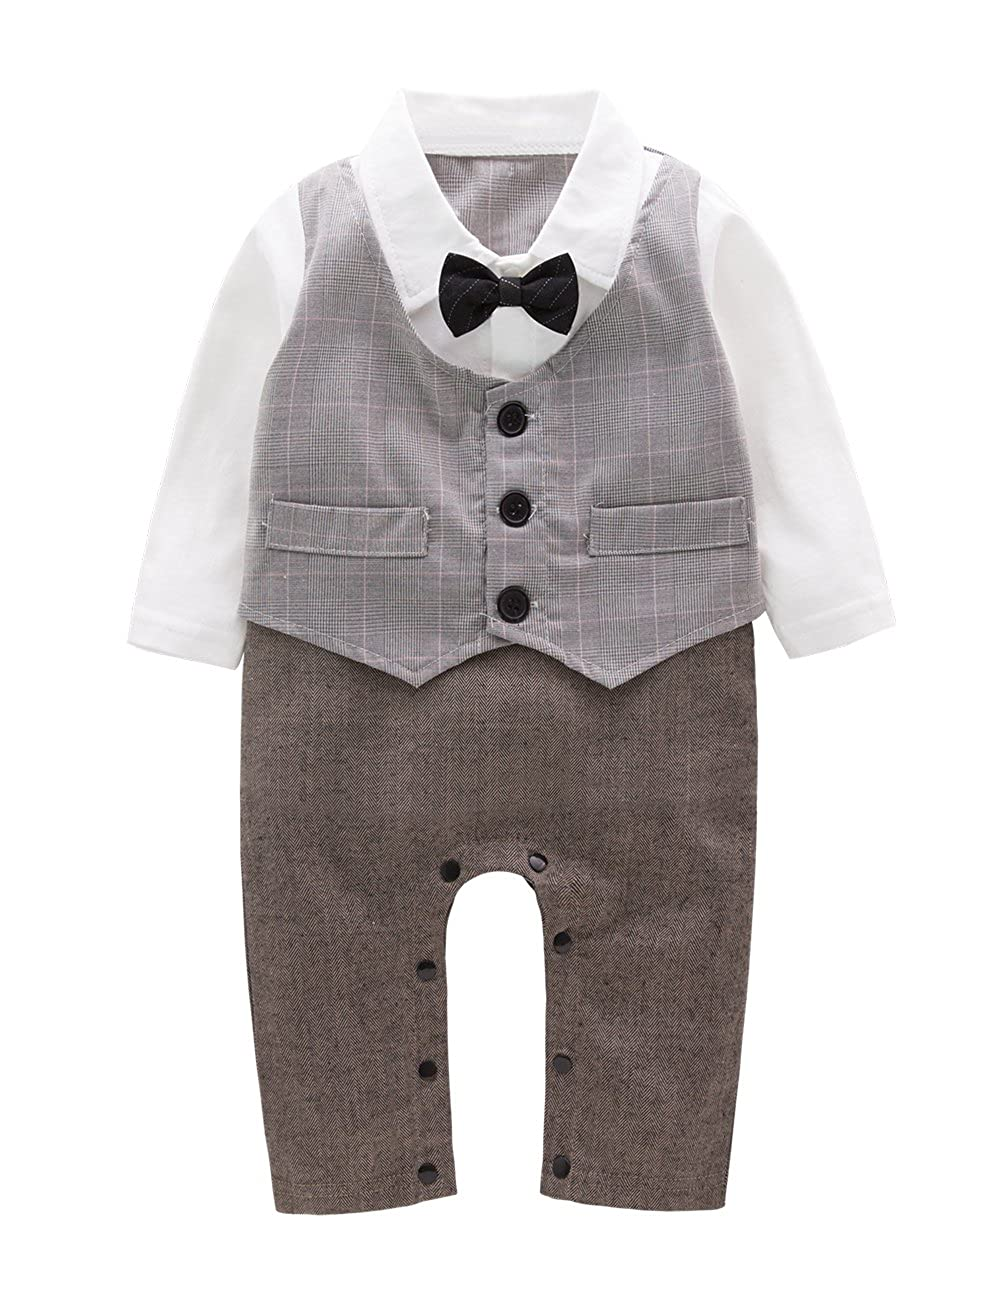 May's Baby Toddler Boys Tuxedo Paild Bowtie Gentleman Faux Vest Onesie